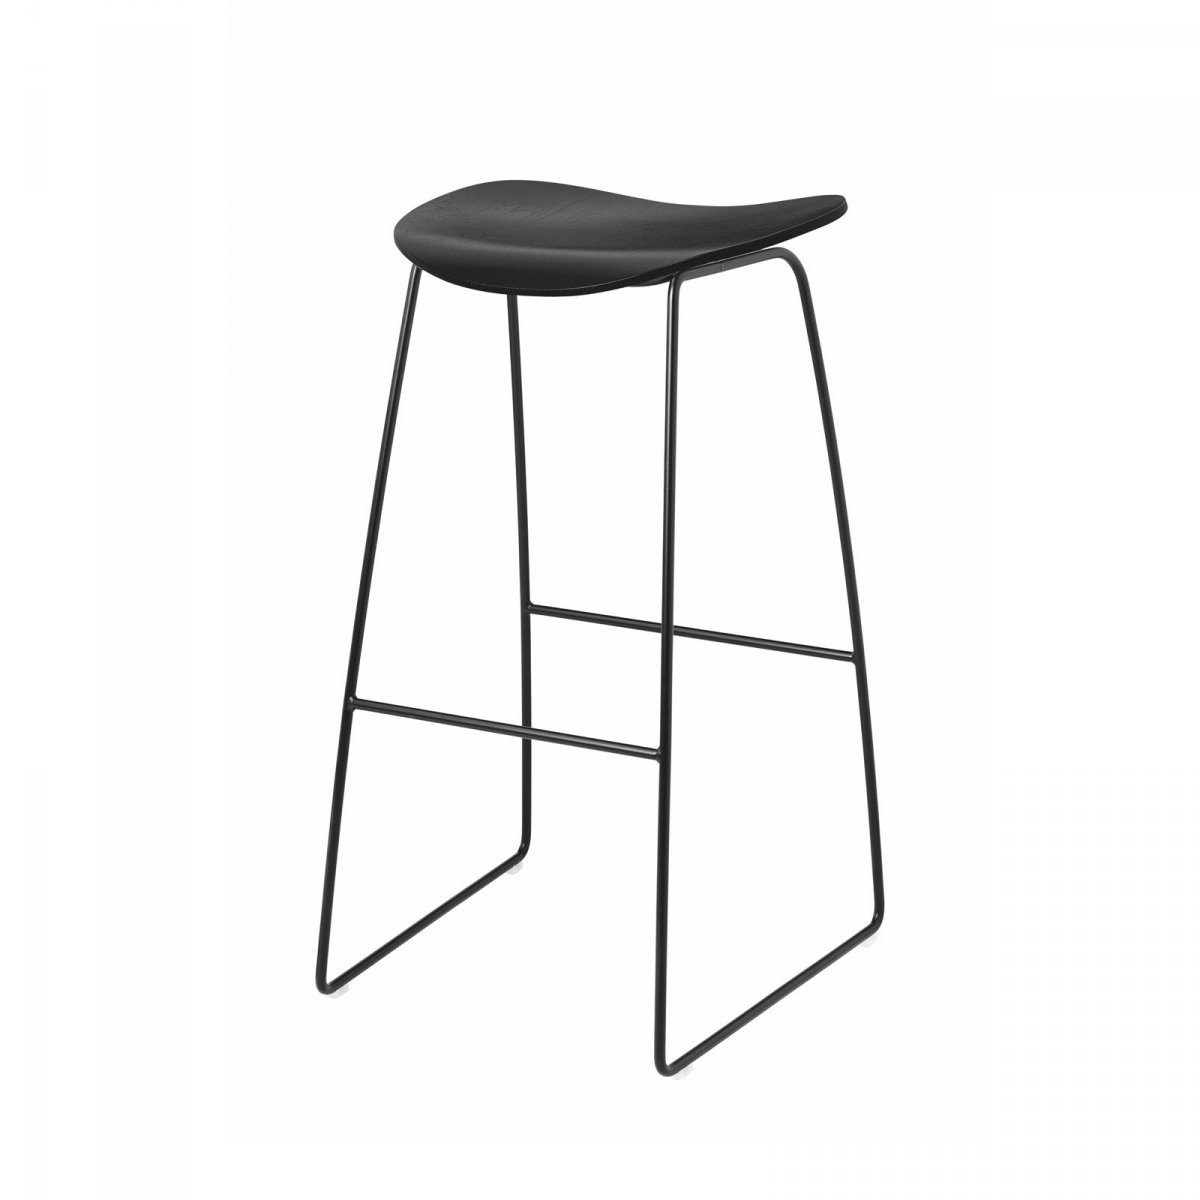 Gubi 2D Stool Sled Base, black.